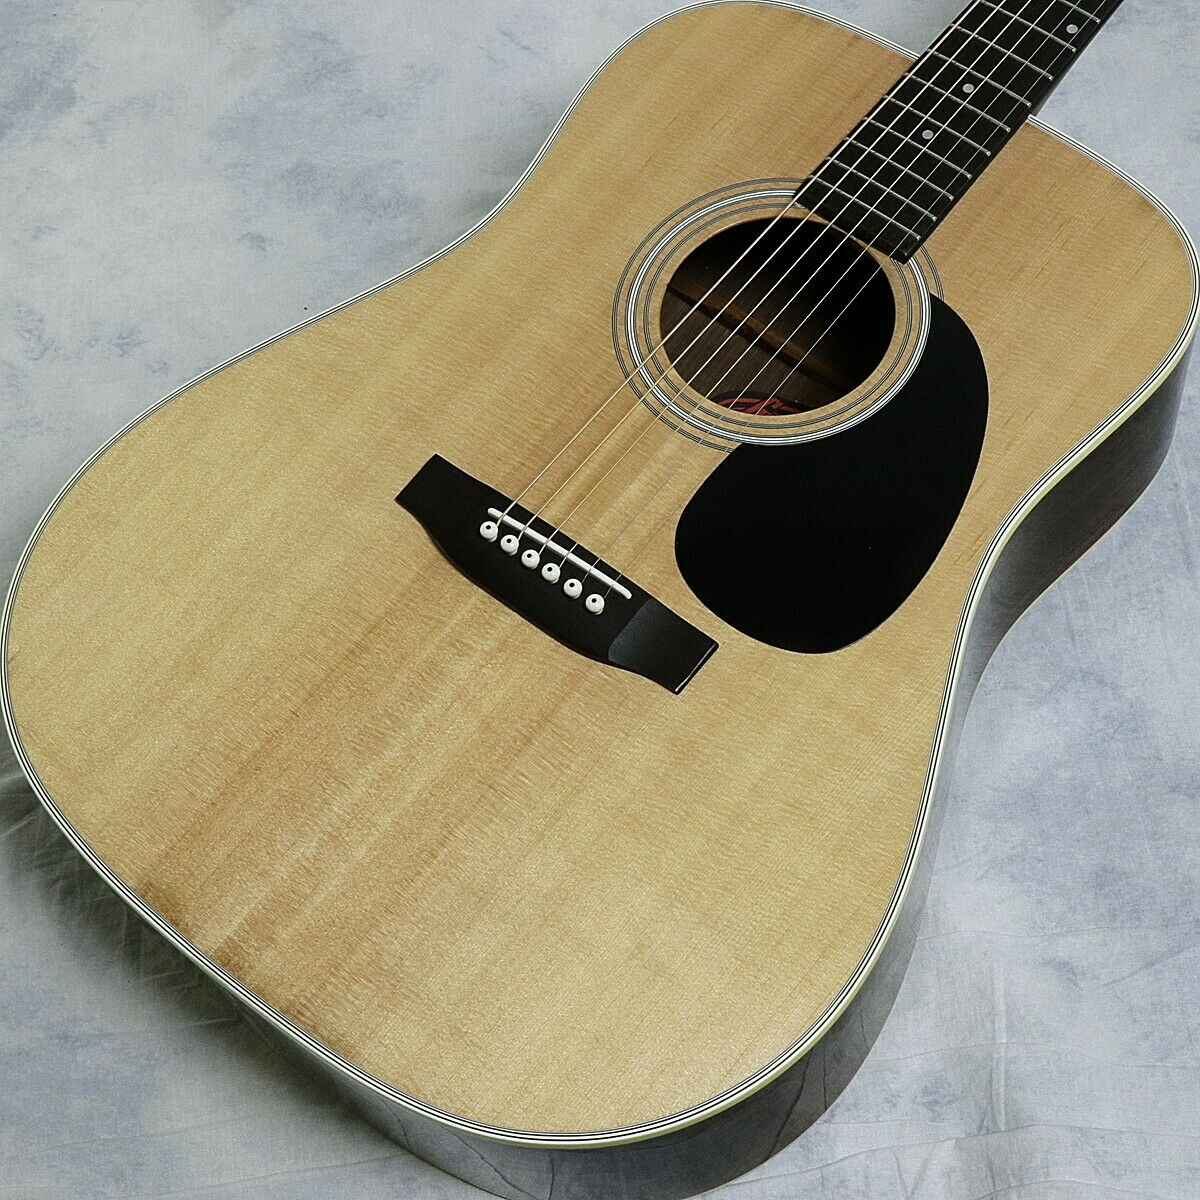 Greco G500 acoustic guitar Japan rare beautiful vintage popular EMS F   S